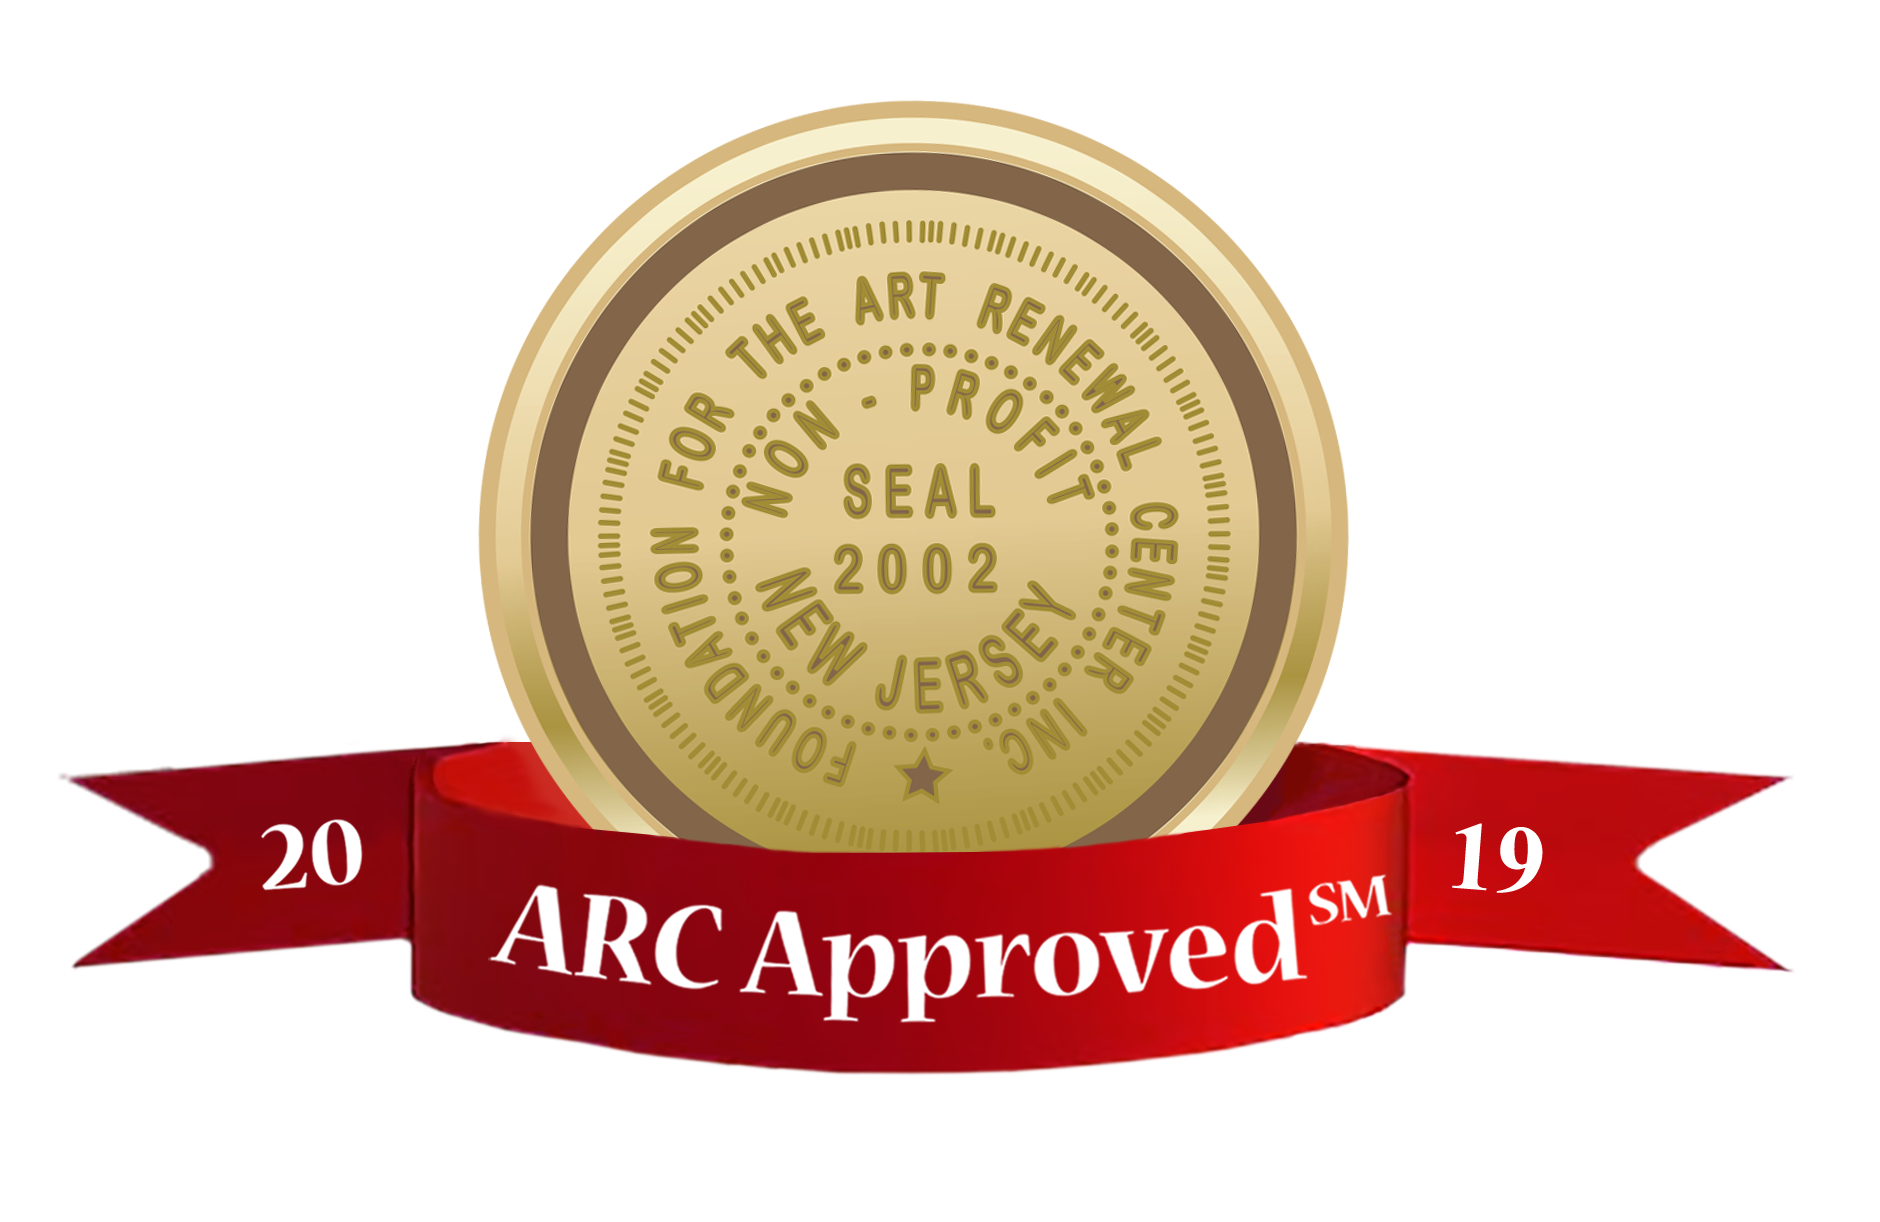 ARC Art Renewal Centre Approved Seal 2019